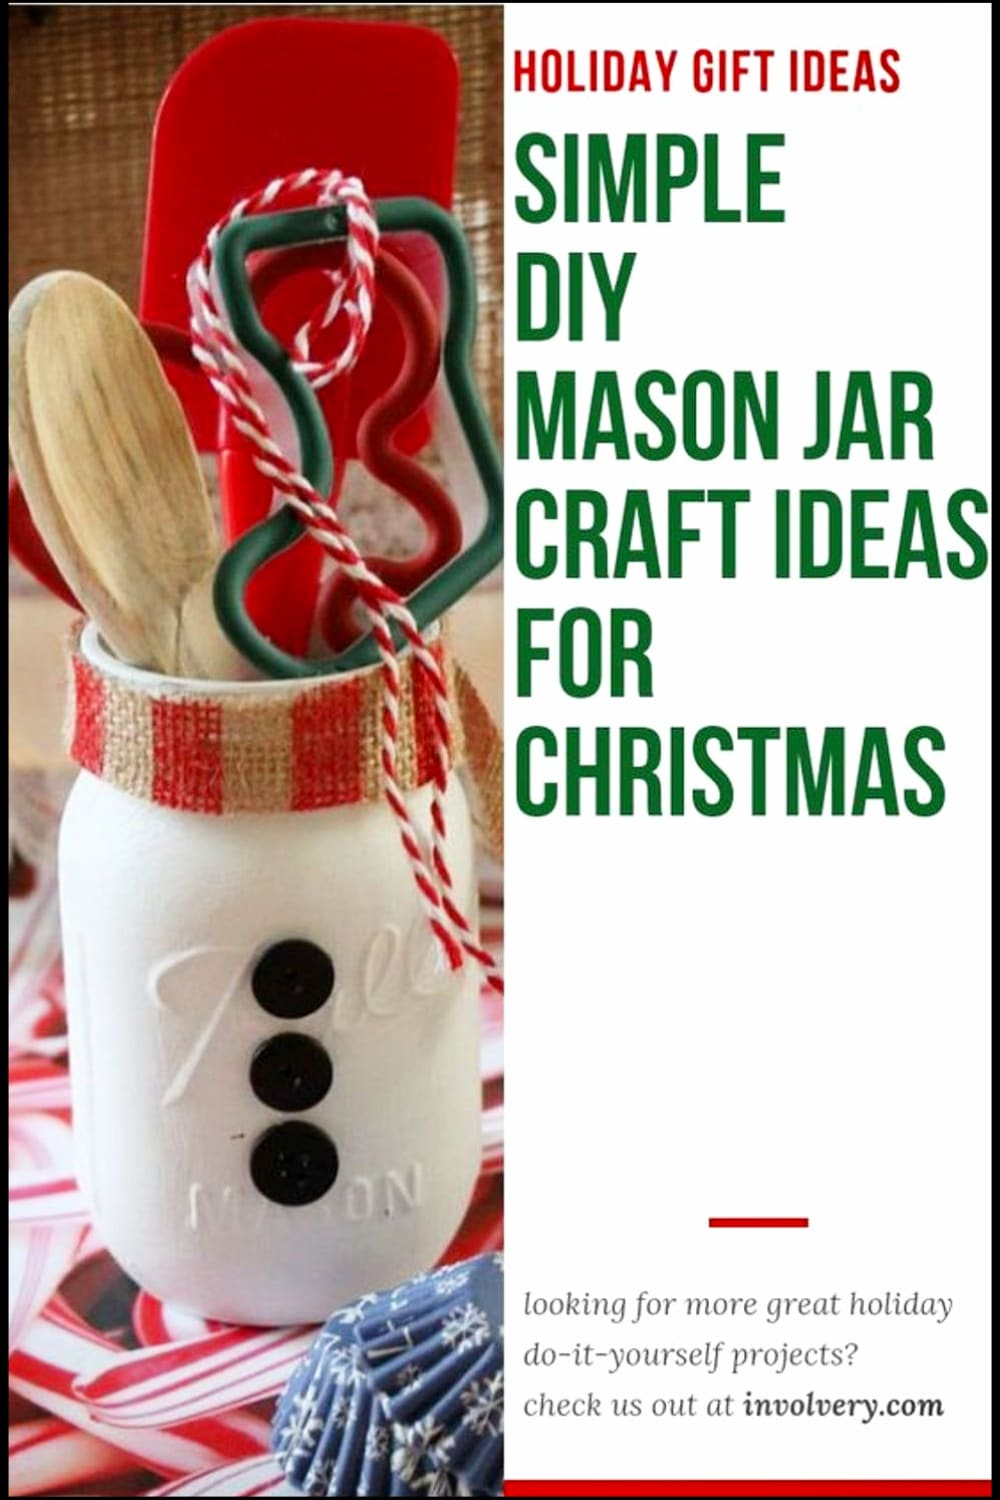 Mason Jar Gifts for Christmas - DIY Mason Jar Christmas Gifts and Crafts - Easy Mason Jar Christmas Gift Ideas for Homemade Holiday Gifts for Neighbors, teachers, friends, co-workers and family. Easy DIY Christmas mason jars and Christmas mason jar decorating ideas - how to decorate mason jars for Christmas gifts - DIY Mason Jar Gifts and Cute Mason Jar Ideas For Christmas Presents